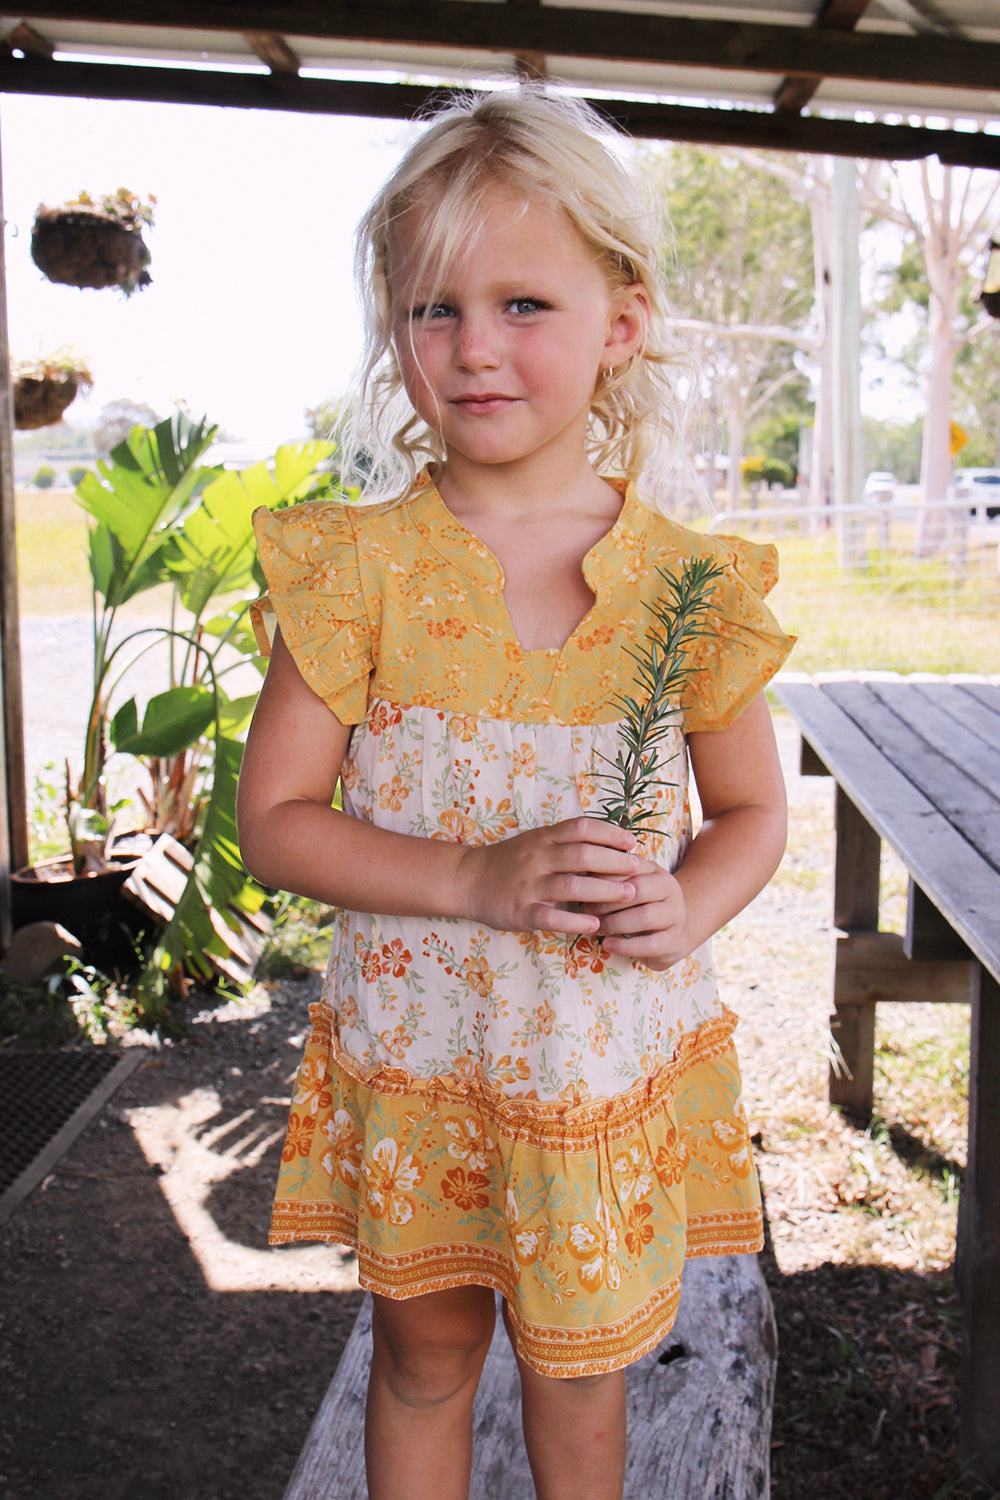 Lily Kiddies Dress in Lemon Drop